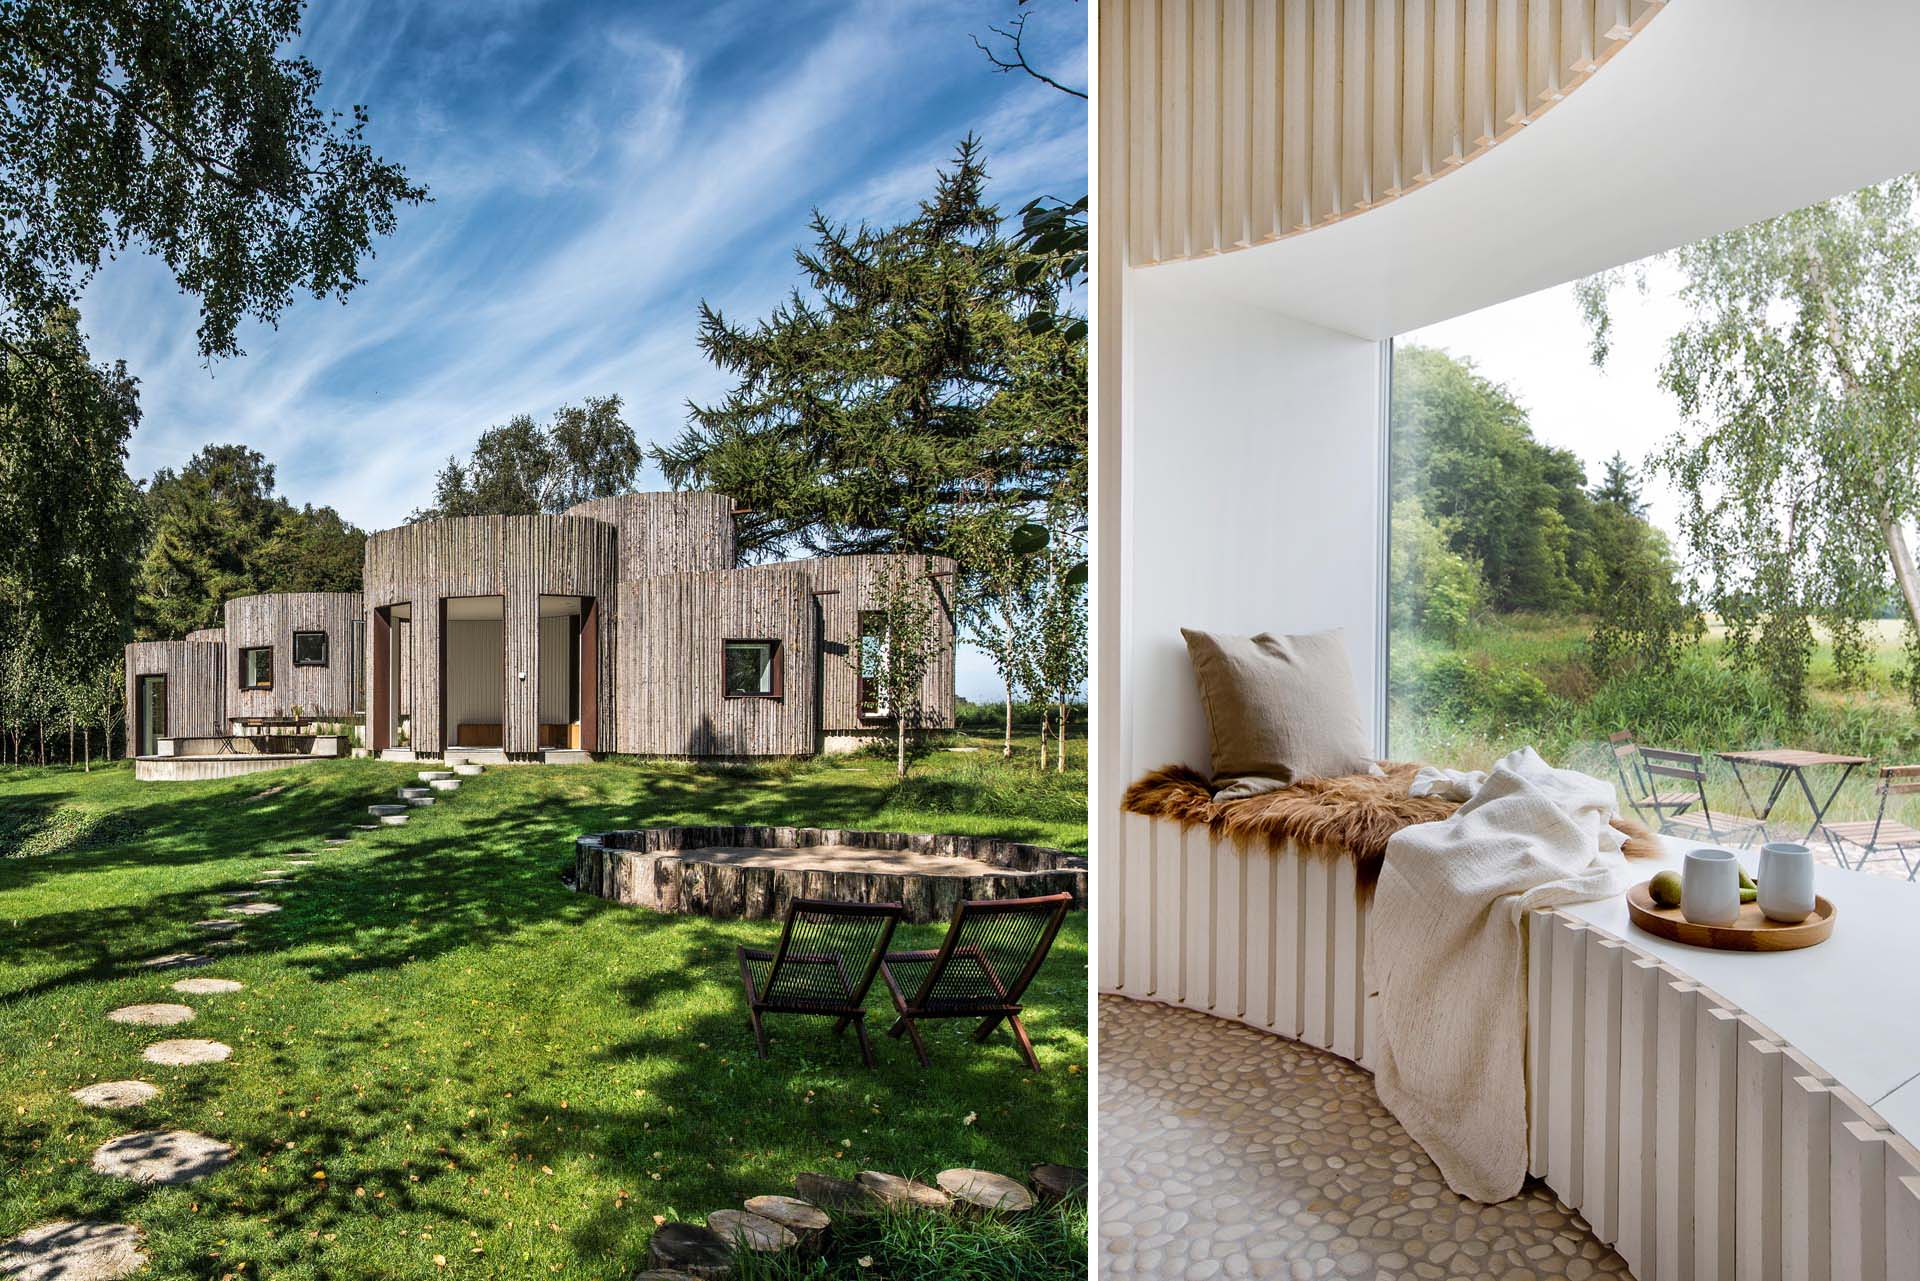 A modern house with a wood exterior, curved interior rooms, and river pebble flooring.